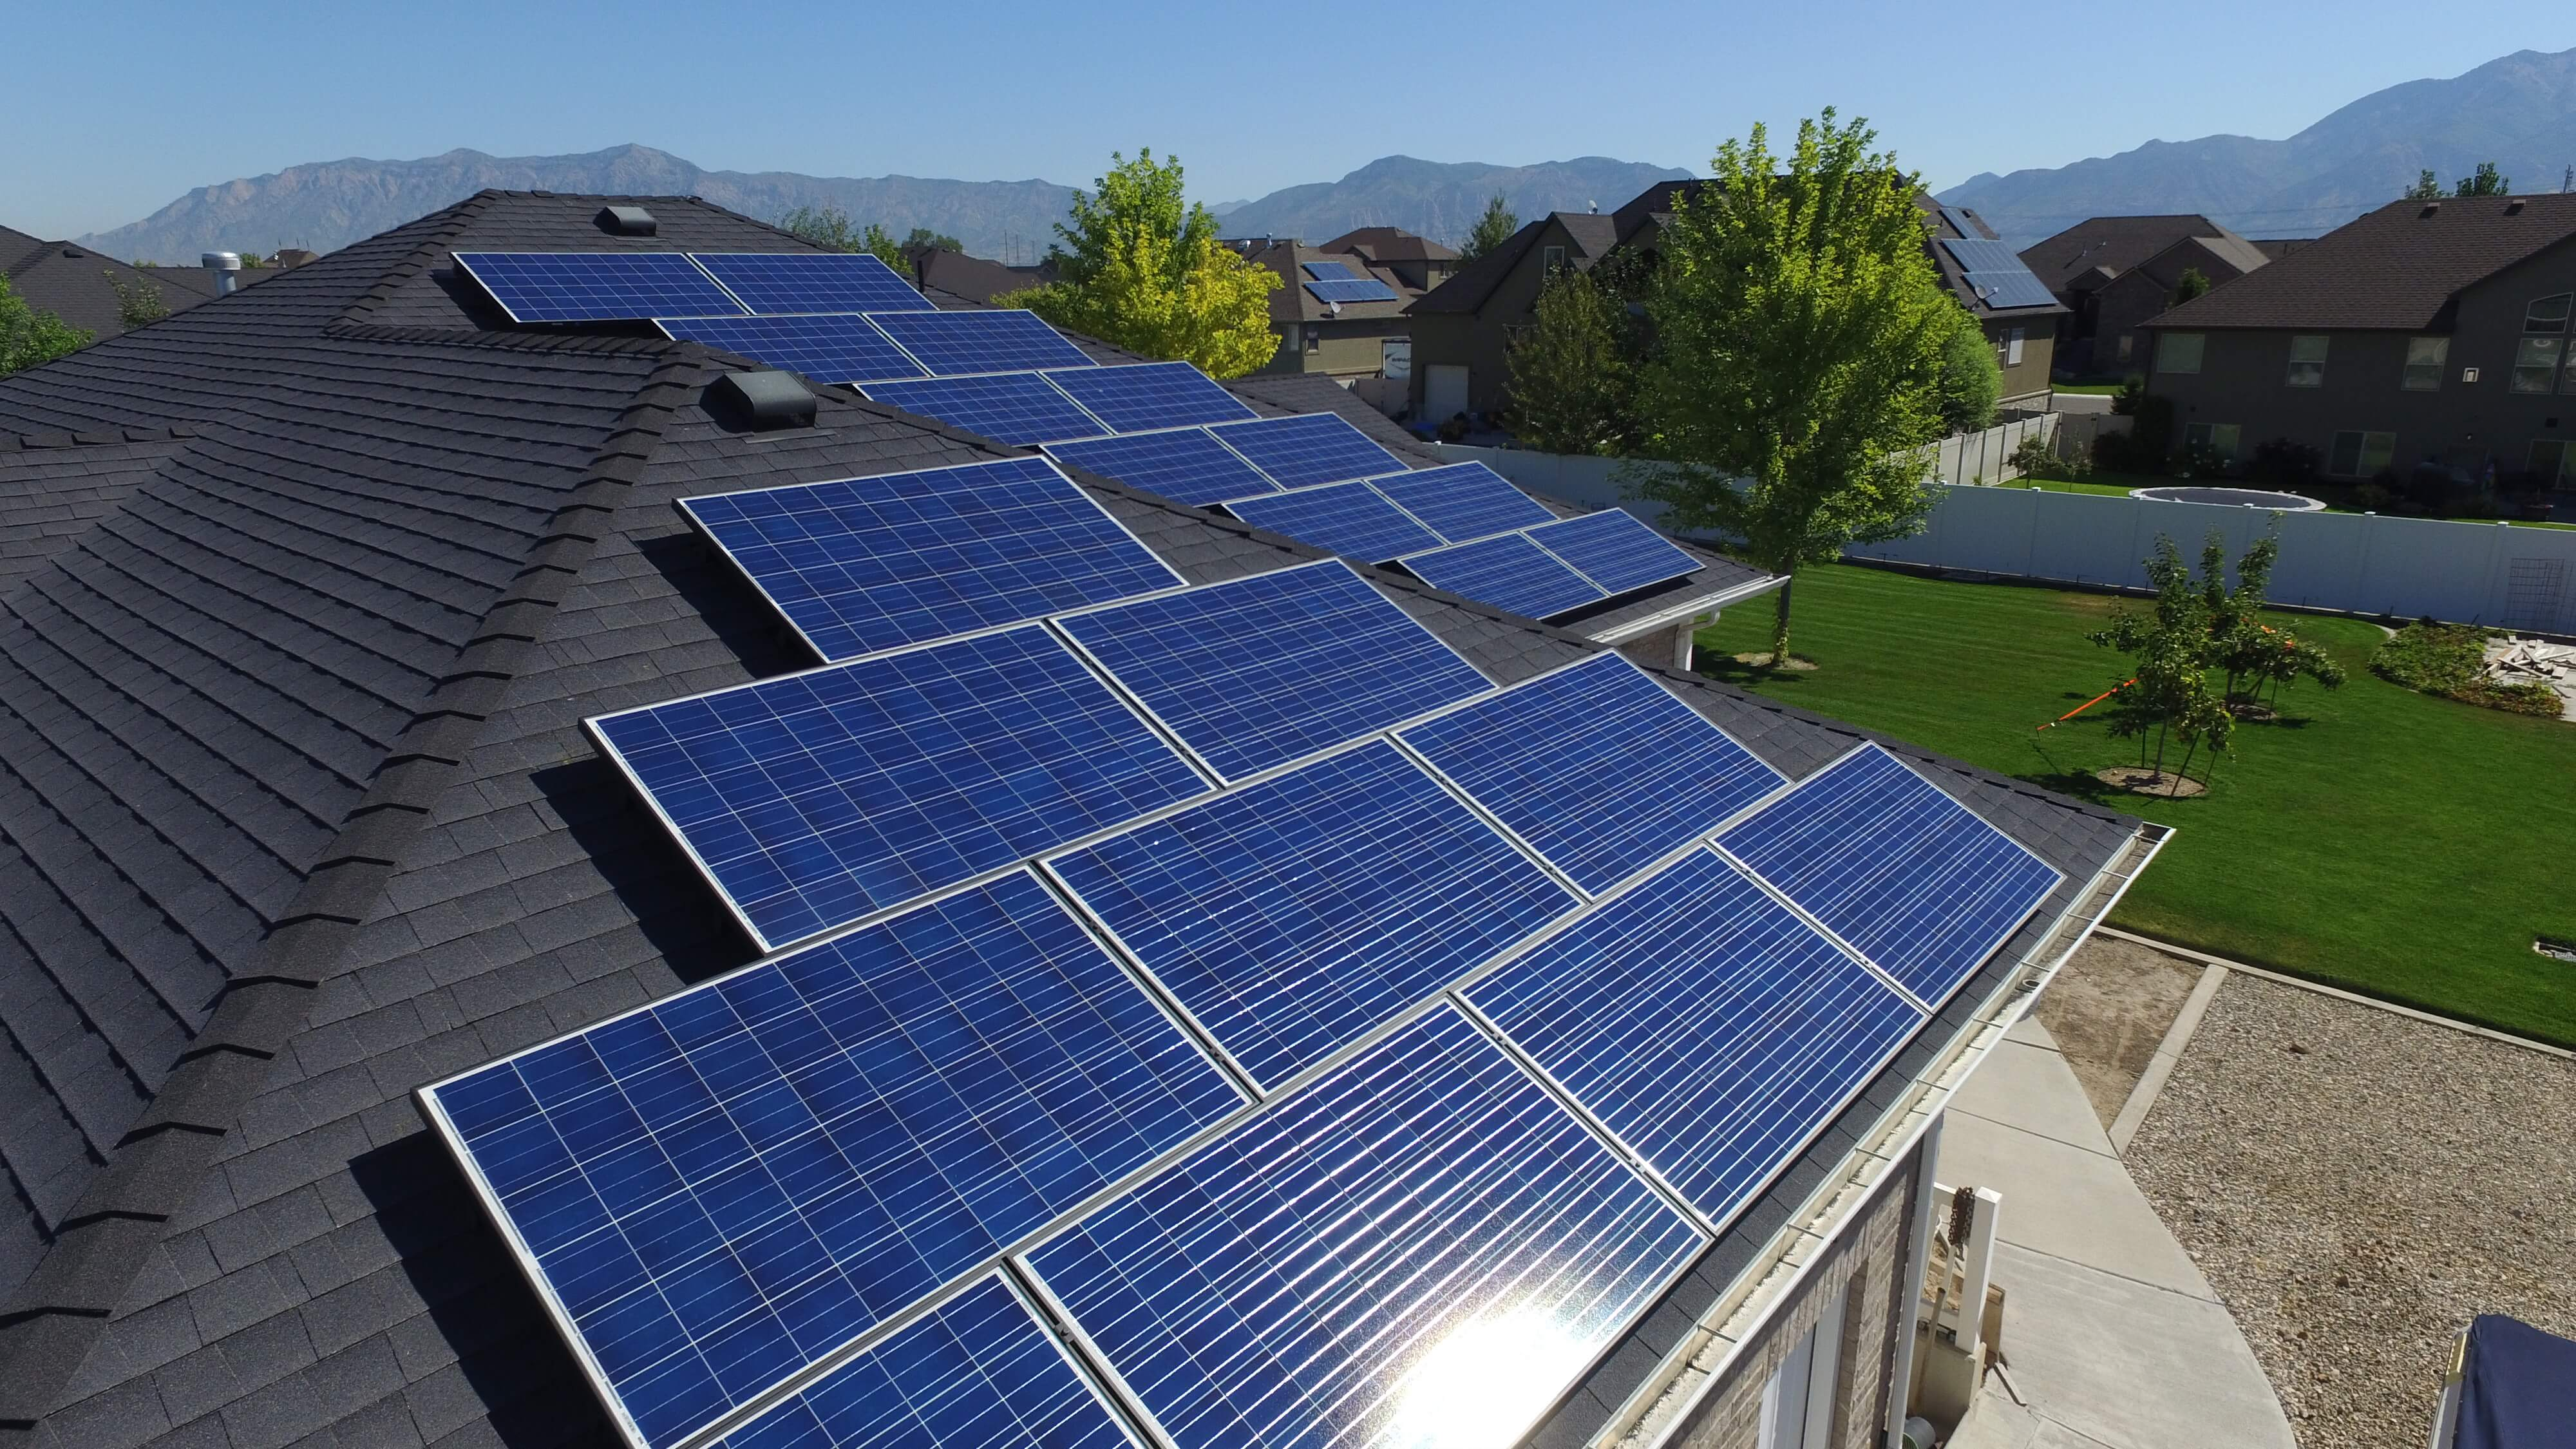 Colorado Solar Energy Systems Eligible for Tax Exemptions